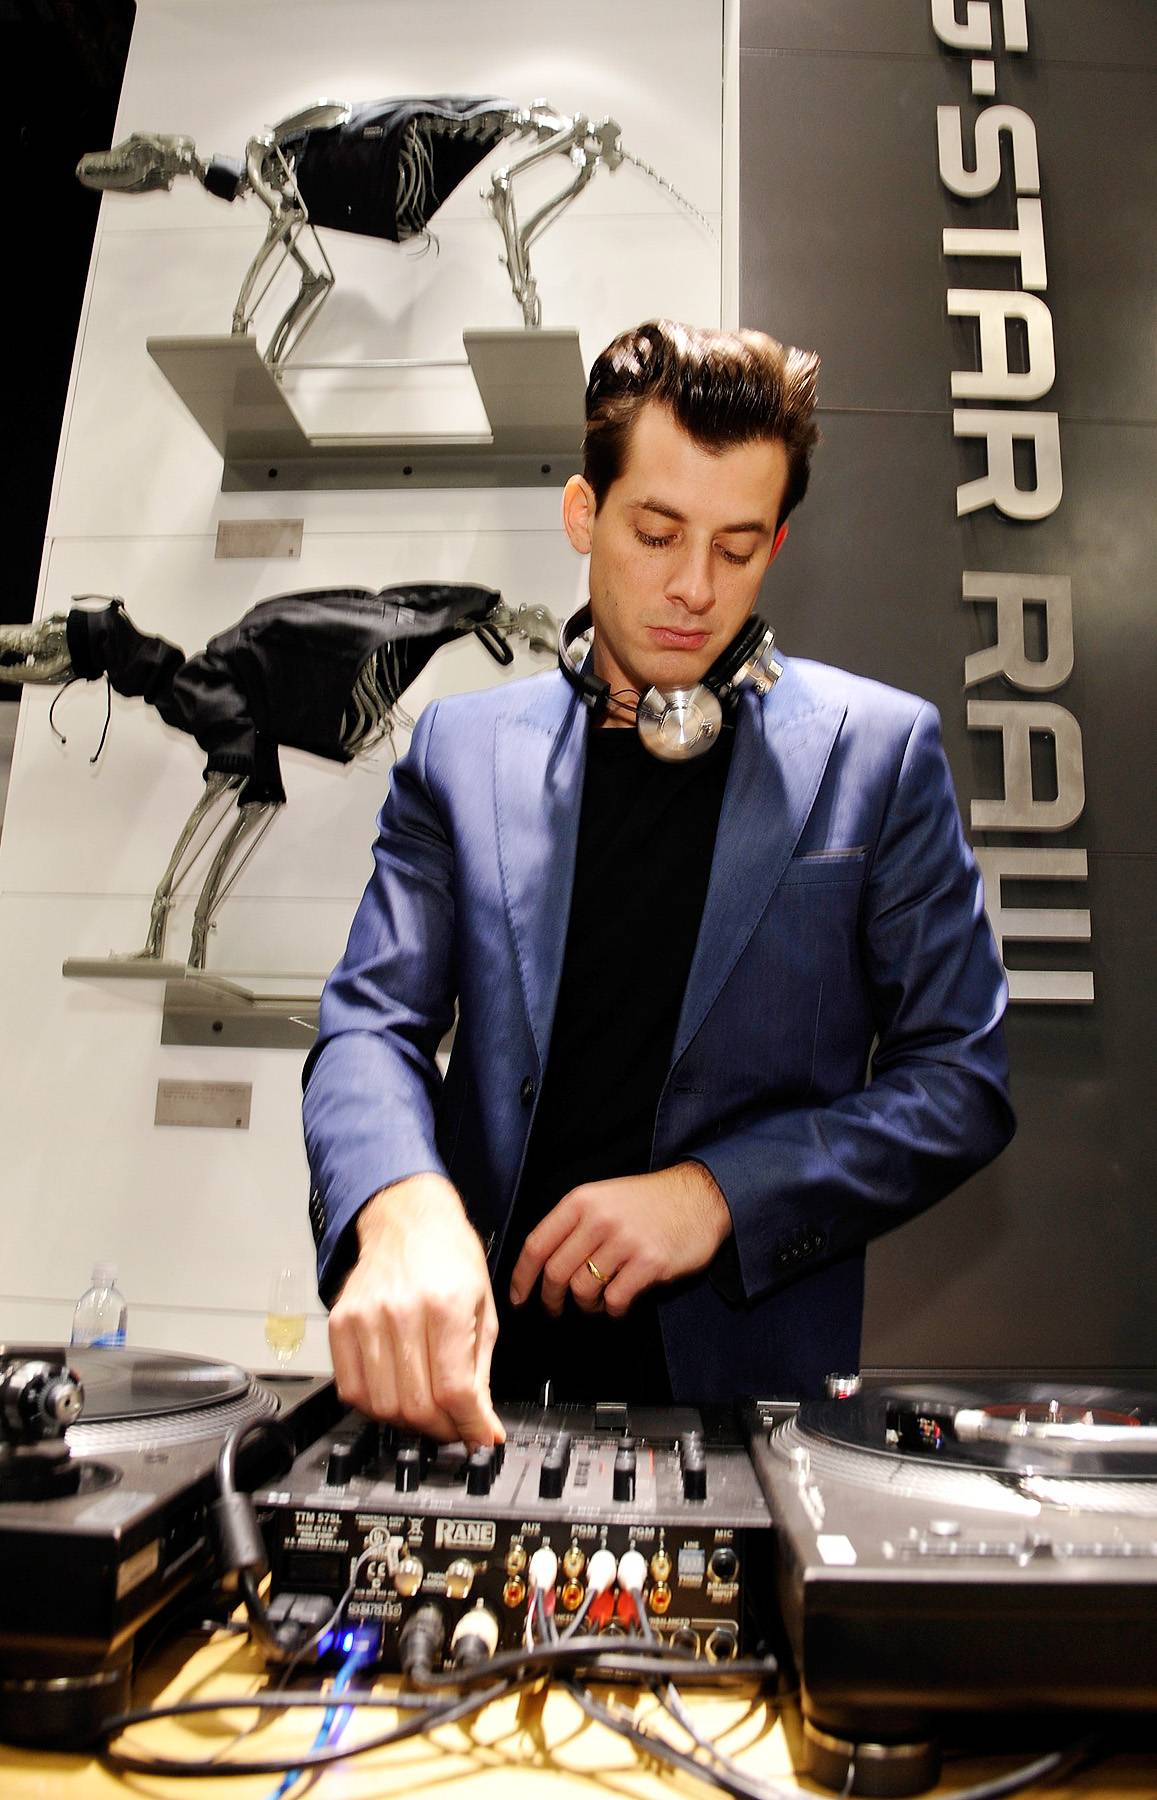 """35. Mark Ronson - Though he's now revered for his vintage, Grammy-winning production work behind Amy Winehouse and others, Ronson started out a renowned club spinner known for helping pioneer the """"mash-up"""" craze and becoming one of the first so-called """"celebrity DJs."""" (Photo: John Sciulli/Getty Images for G-Star)"""